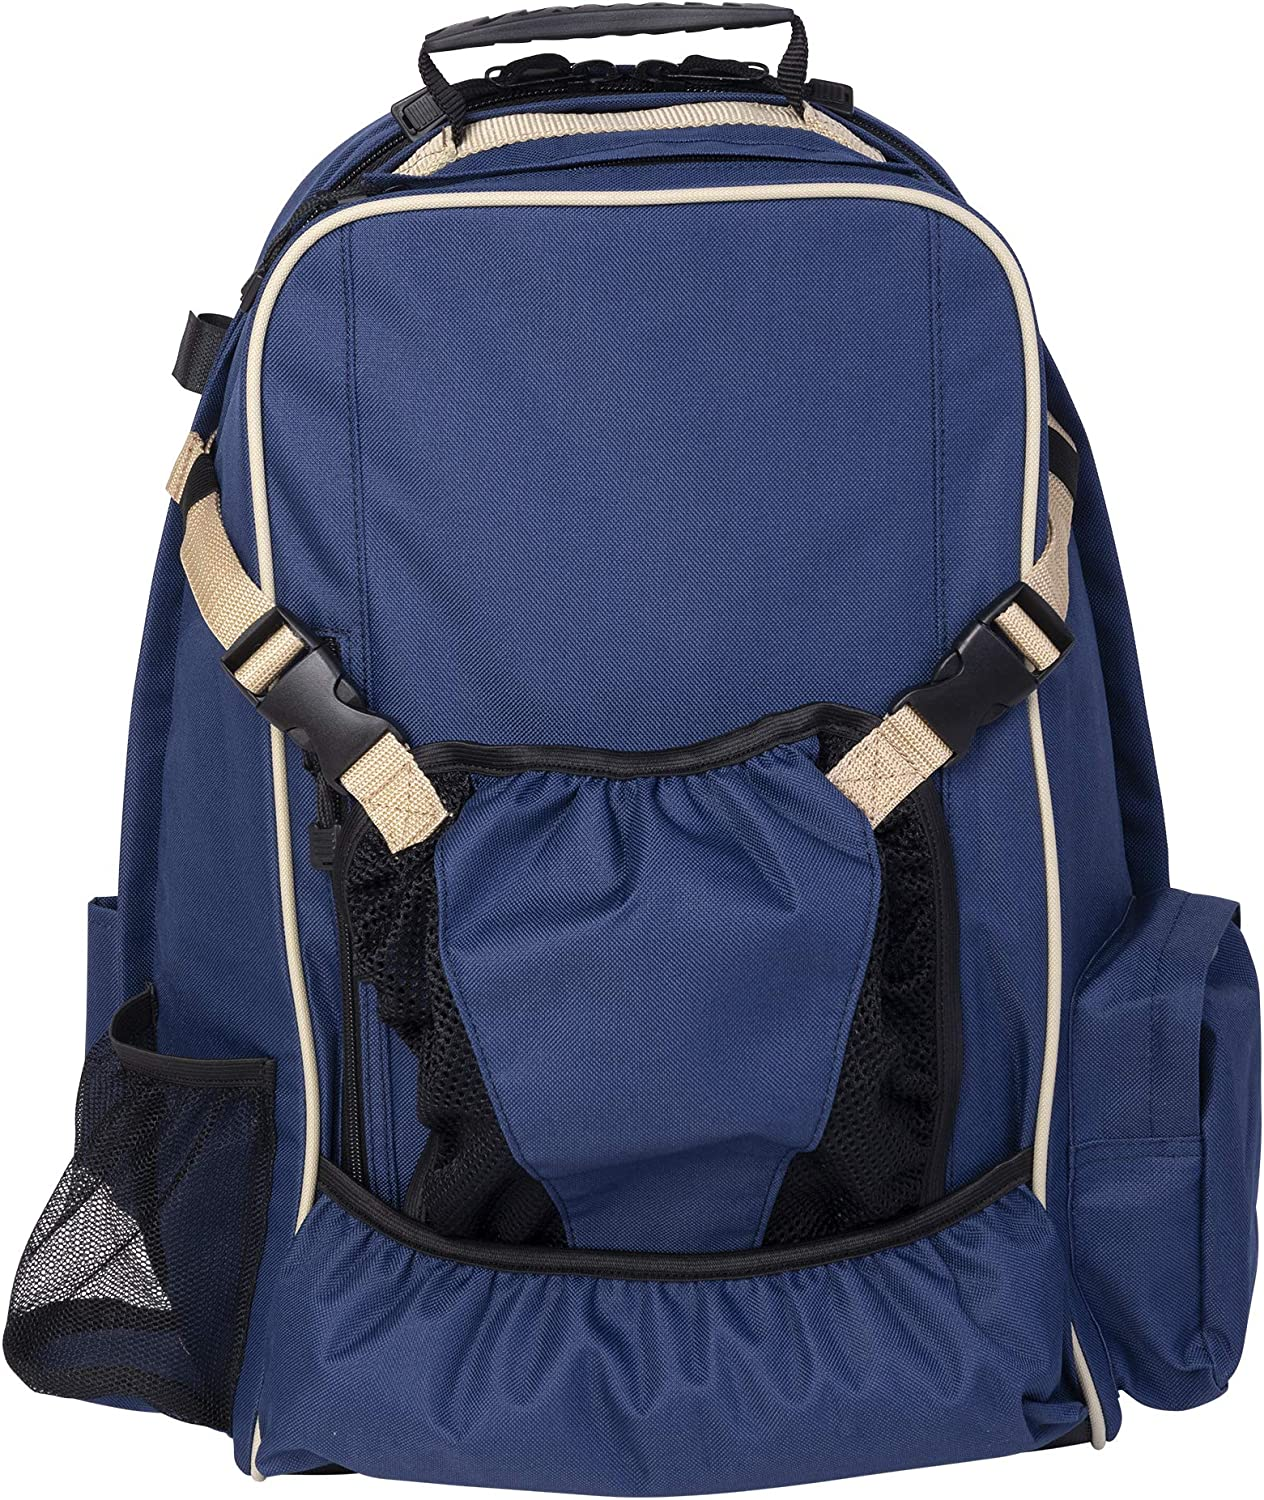 Huntley Equestrian Back Pack Navy Blue